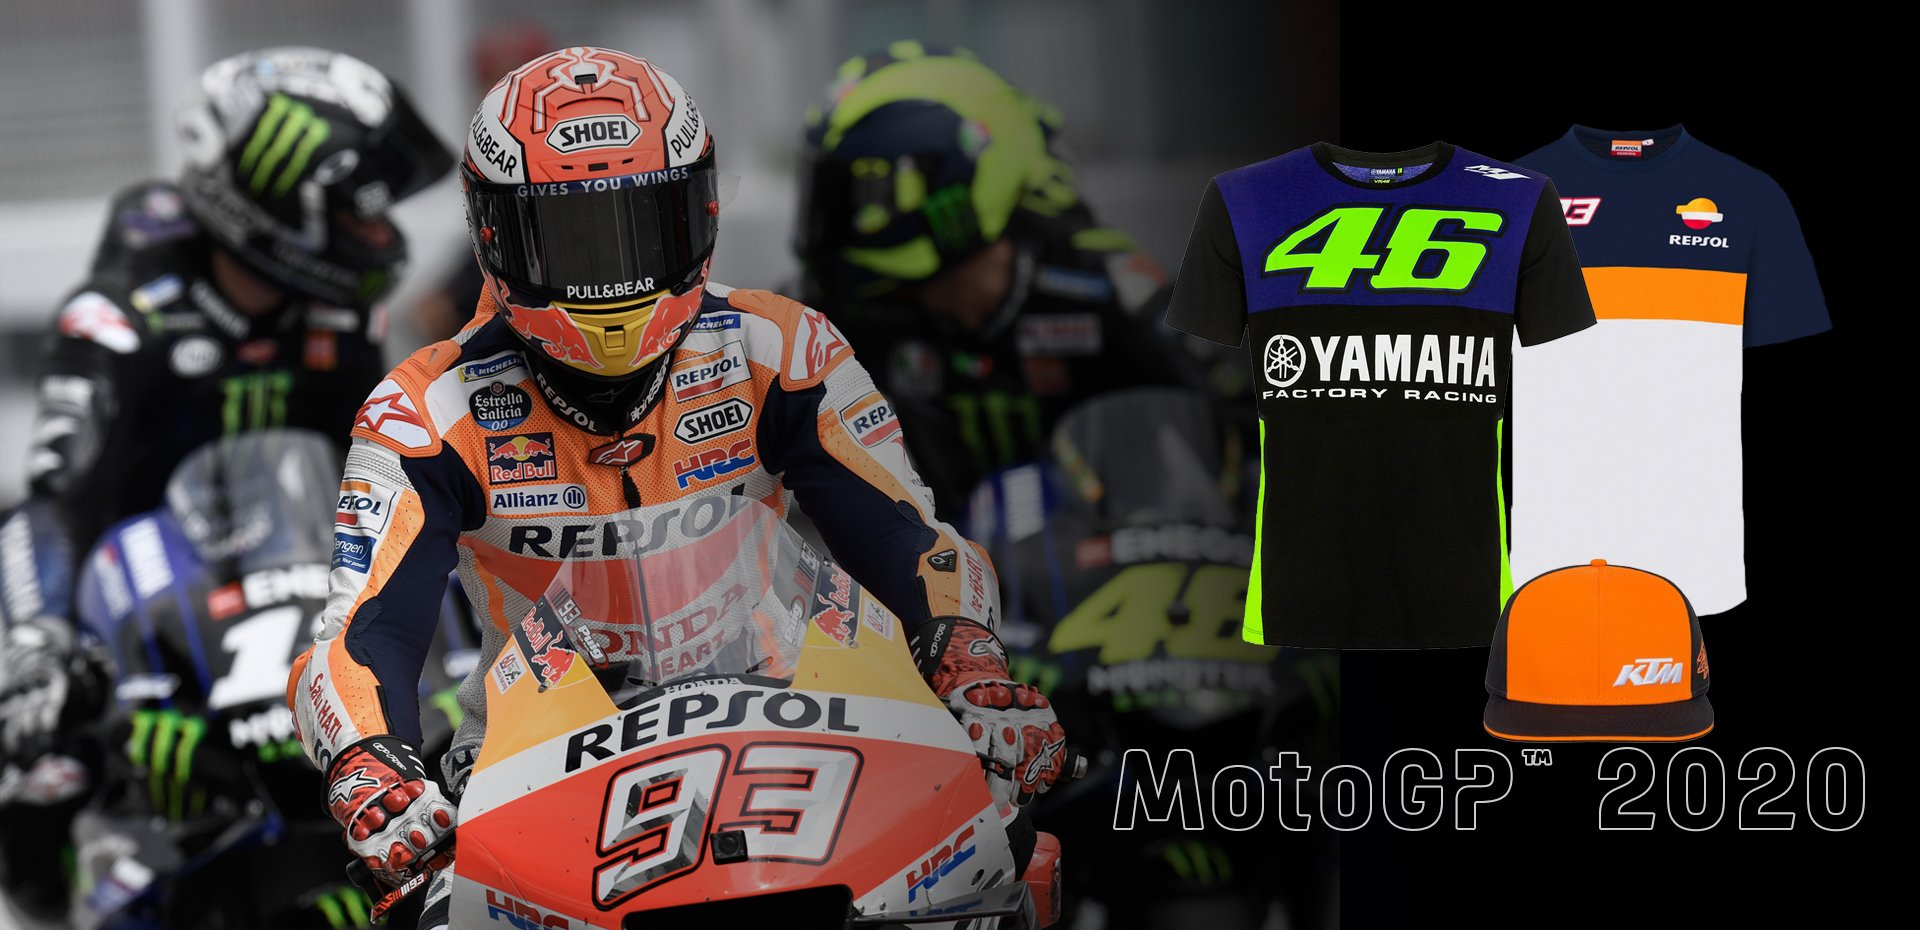 MotoGP™ Championship is back!